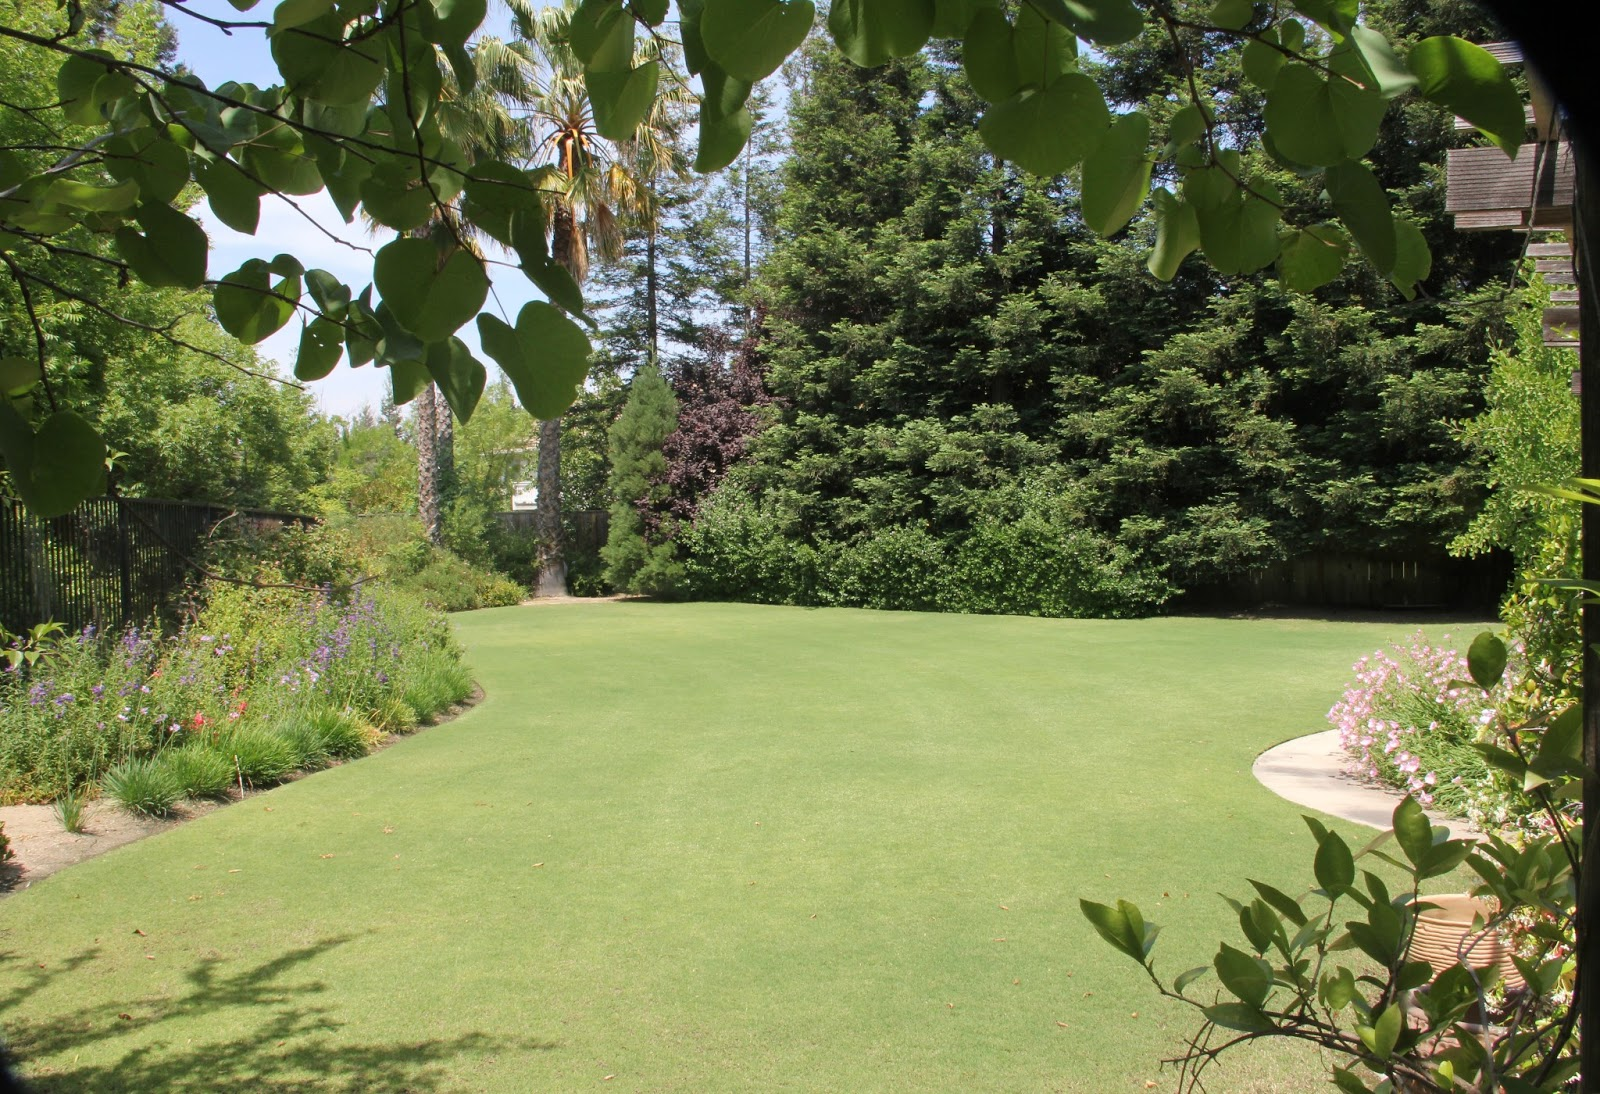 Landscaping With Bermuda Grass : Lawn and landscape tips from the turf doctor bermuda